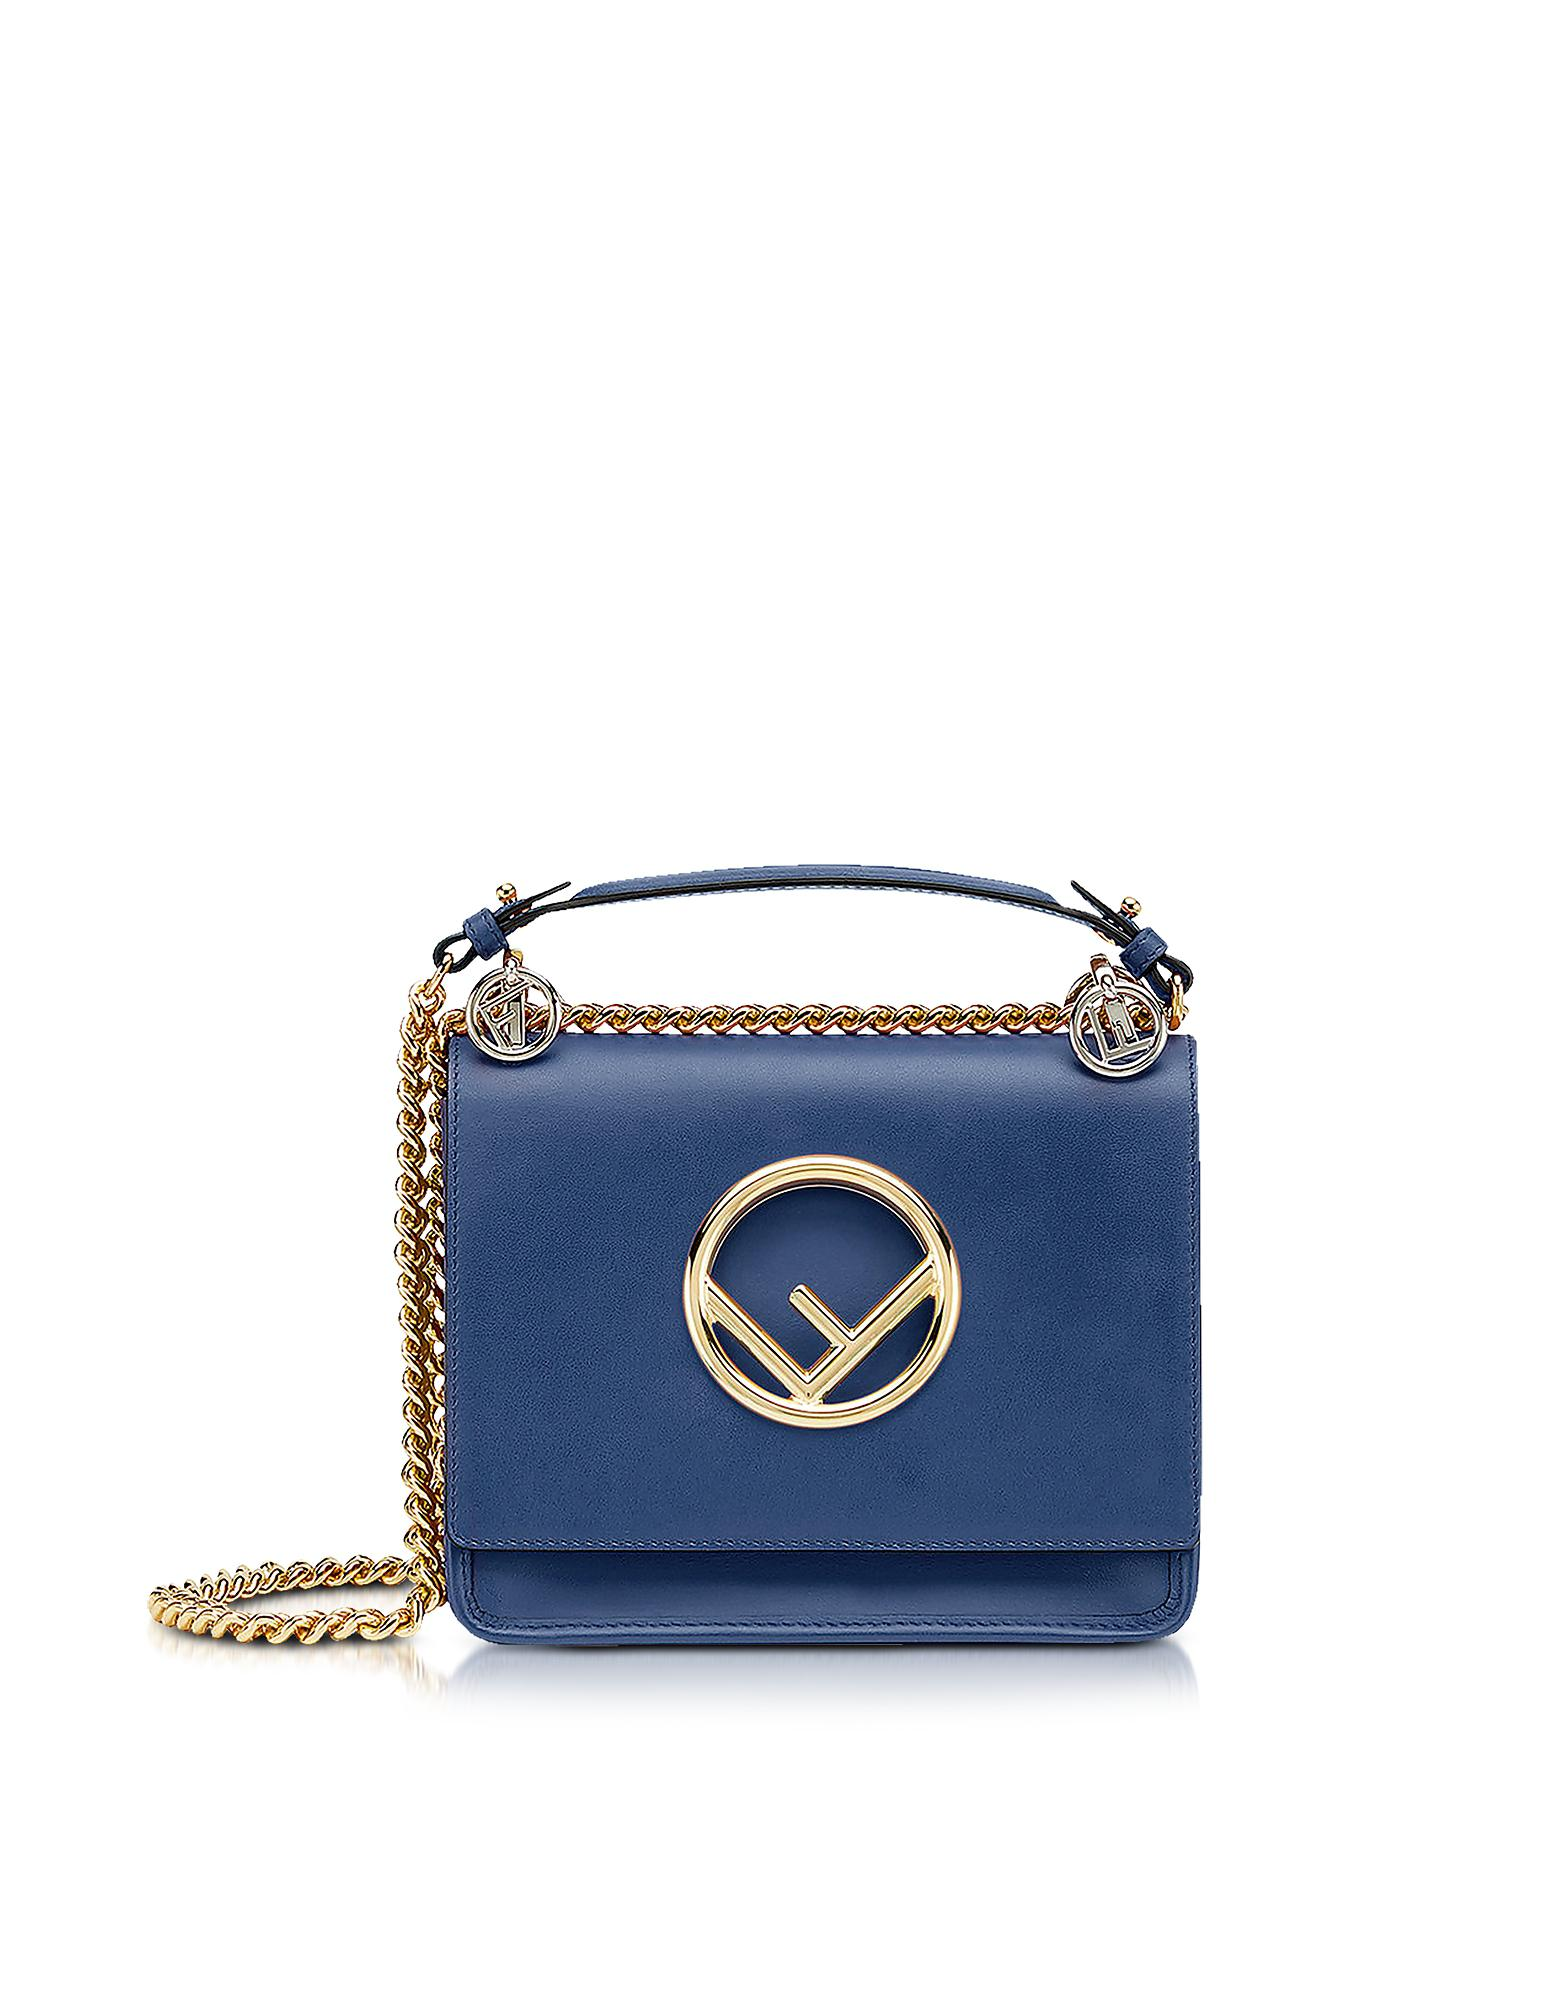 6a7ae2398bfd Fendi Kan I Small Blue Leather Shoulder Bag in Blue - Lyst